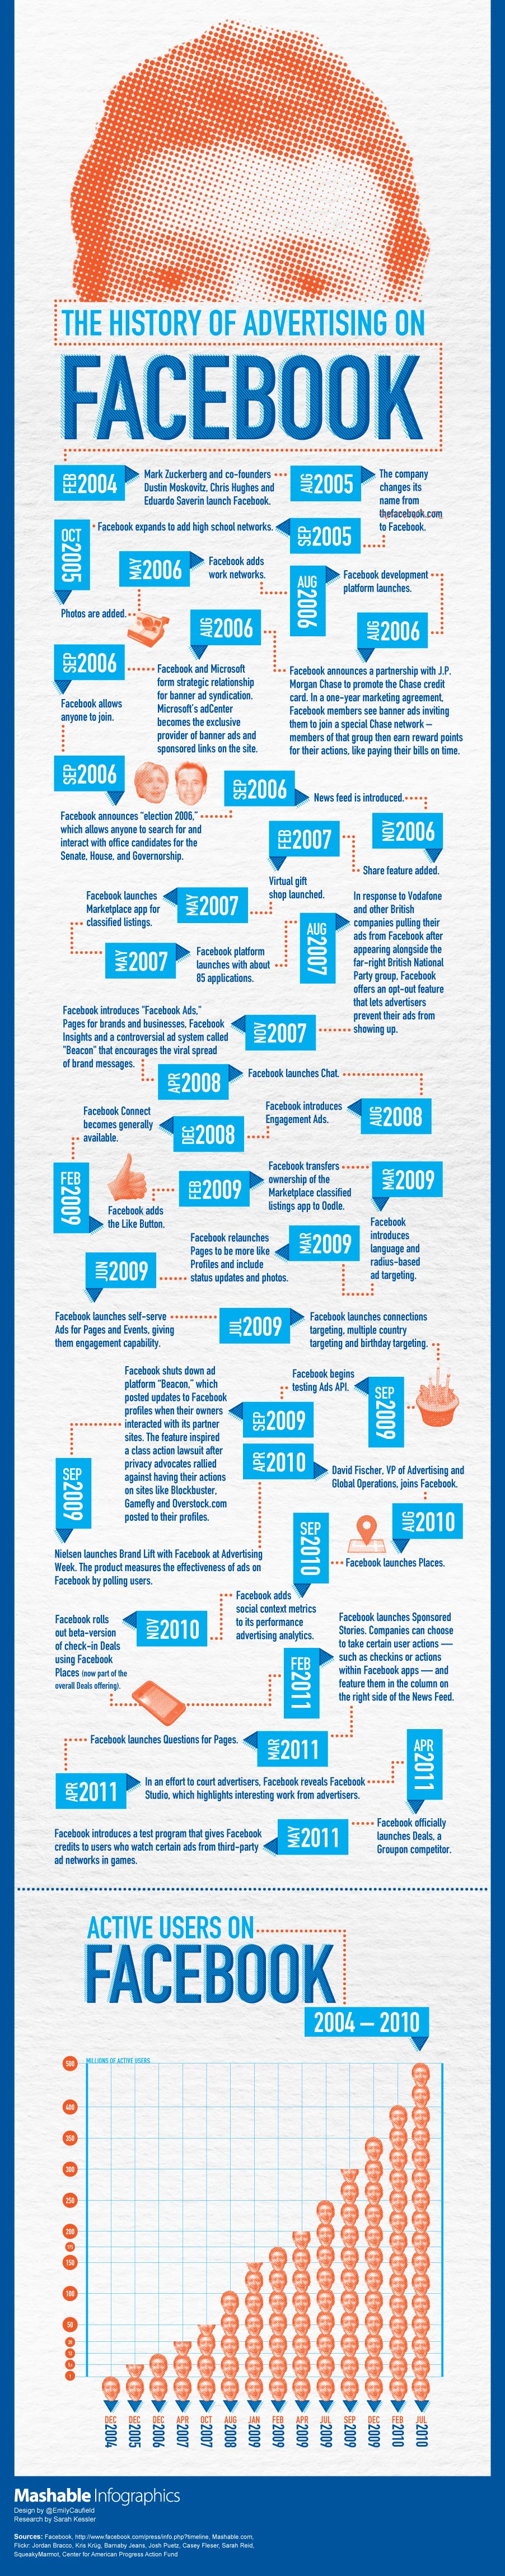 facebook-advertising-mashable-infographic-902